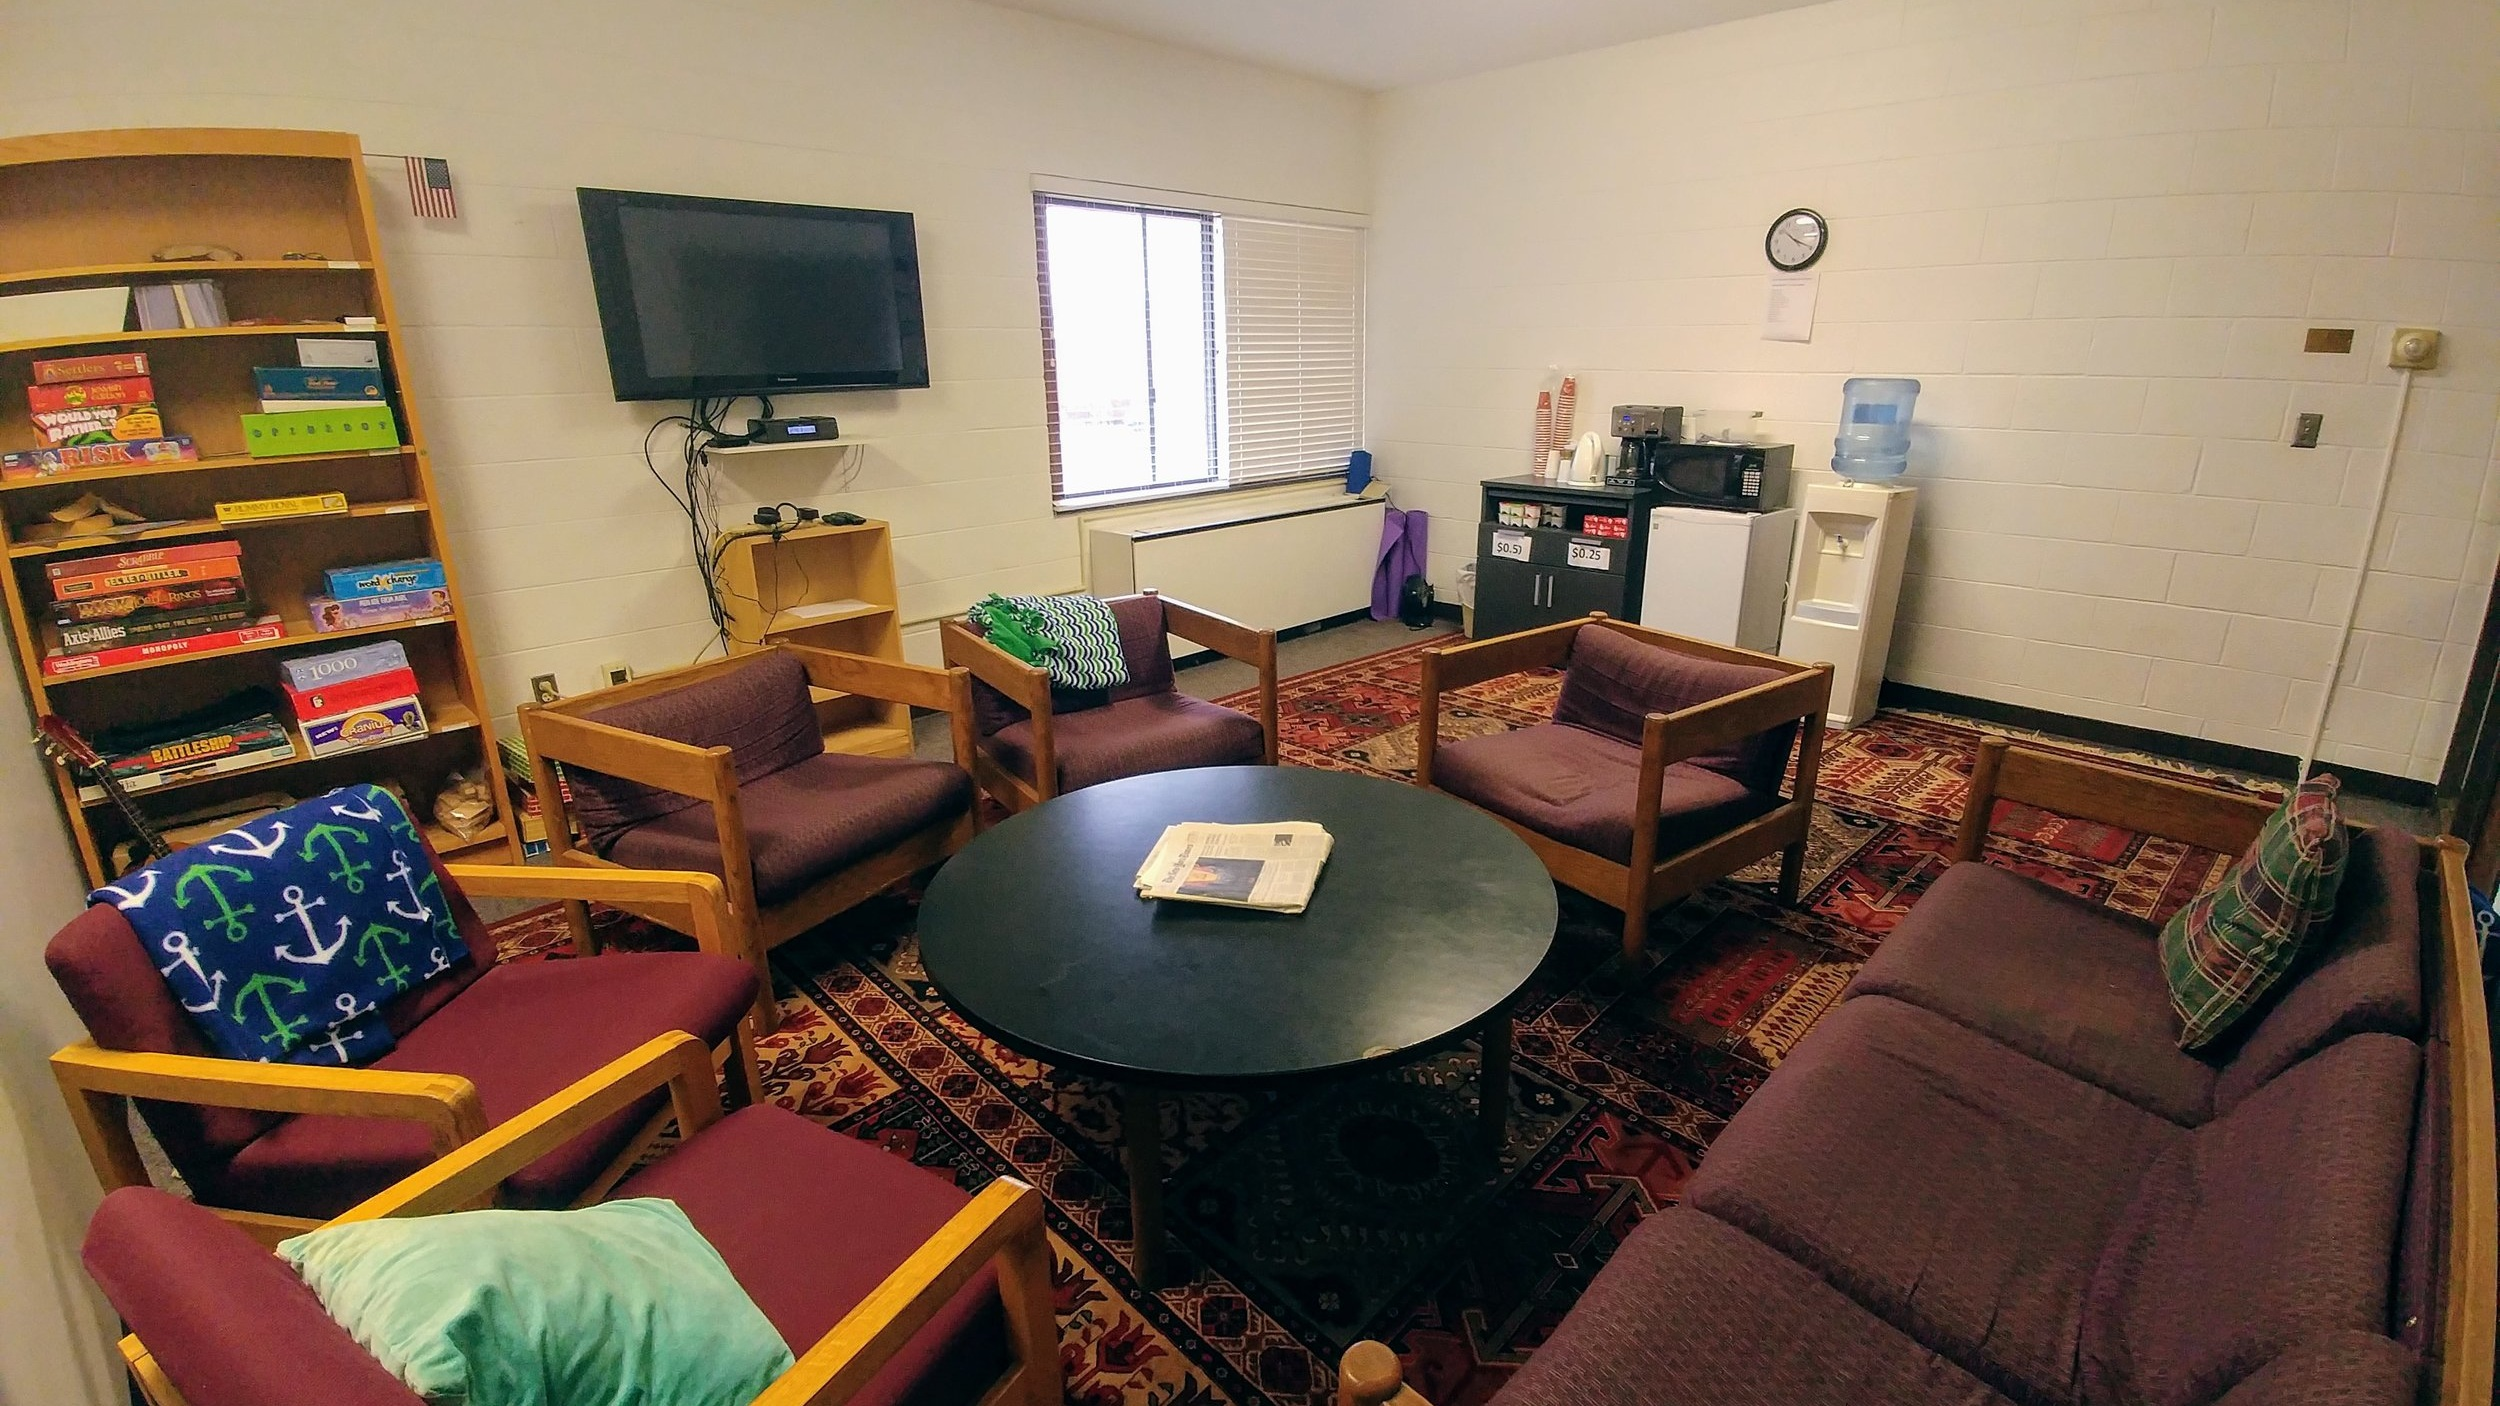 Building Renovations - Help us improve Hillel House to make it a more welcoming and comfortable place for everyone!